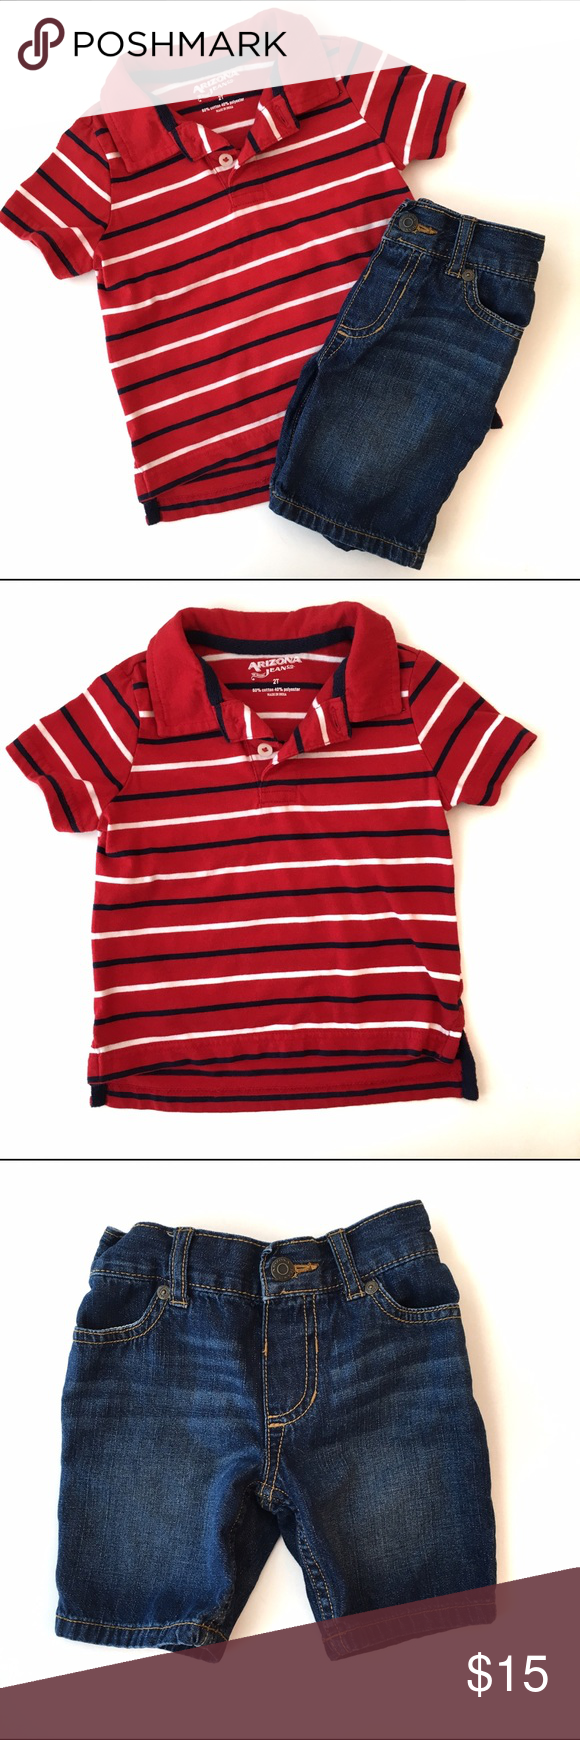 🚀 Arizona Jean Co Outfit 🚀 Arizona Jean Co Outfit includes red polo style shirt in red with navy and white striped and denim shorts. And elastic waist. In VGUC condition, one tiny mark on the shirt, see pictures, otherwise Outfit is in great condition.  🚀 from my nephews closet, smoke and pet free home 🚀 Arizona Jean Company Matching Sets